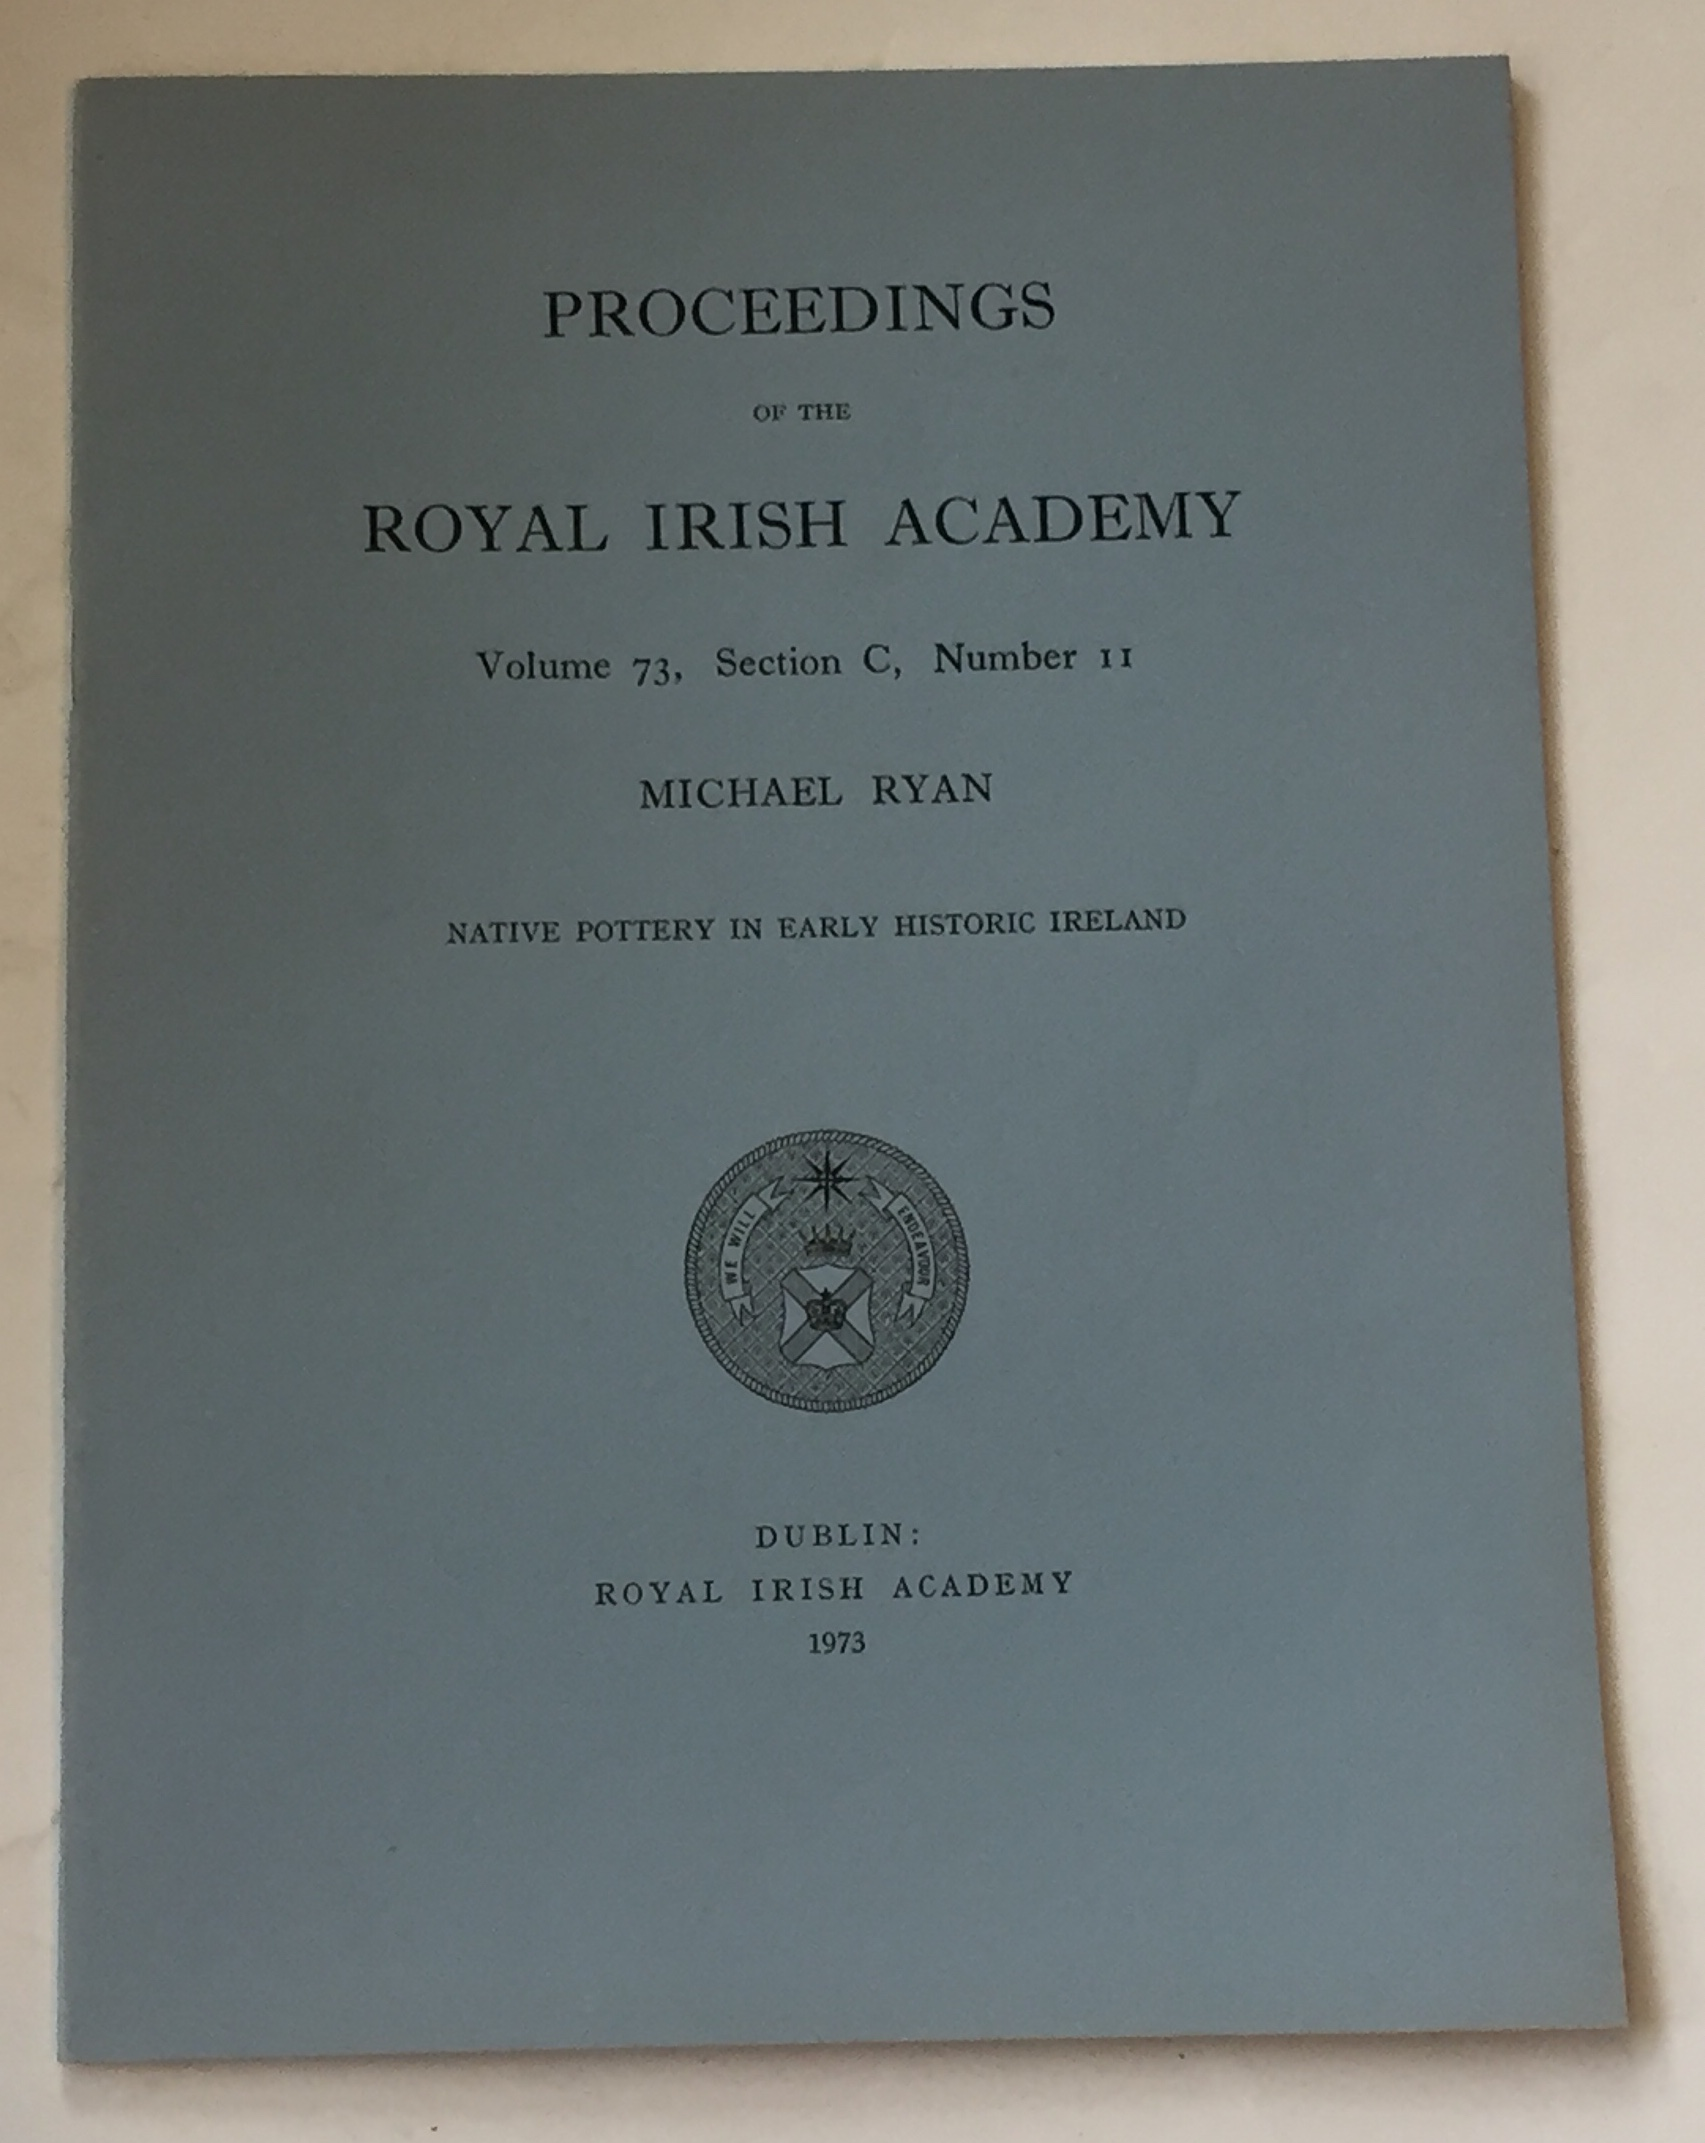 Image for Native pottery in early historic Ireland  :Proceedings of the Royal Irish Academy, Volume 73, Section C, No. 11